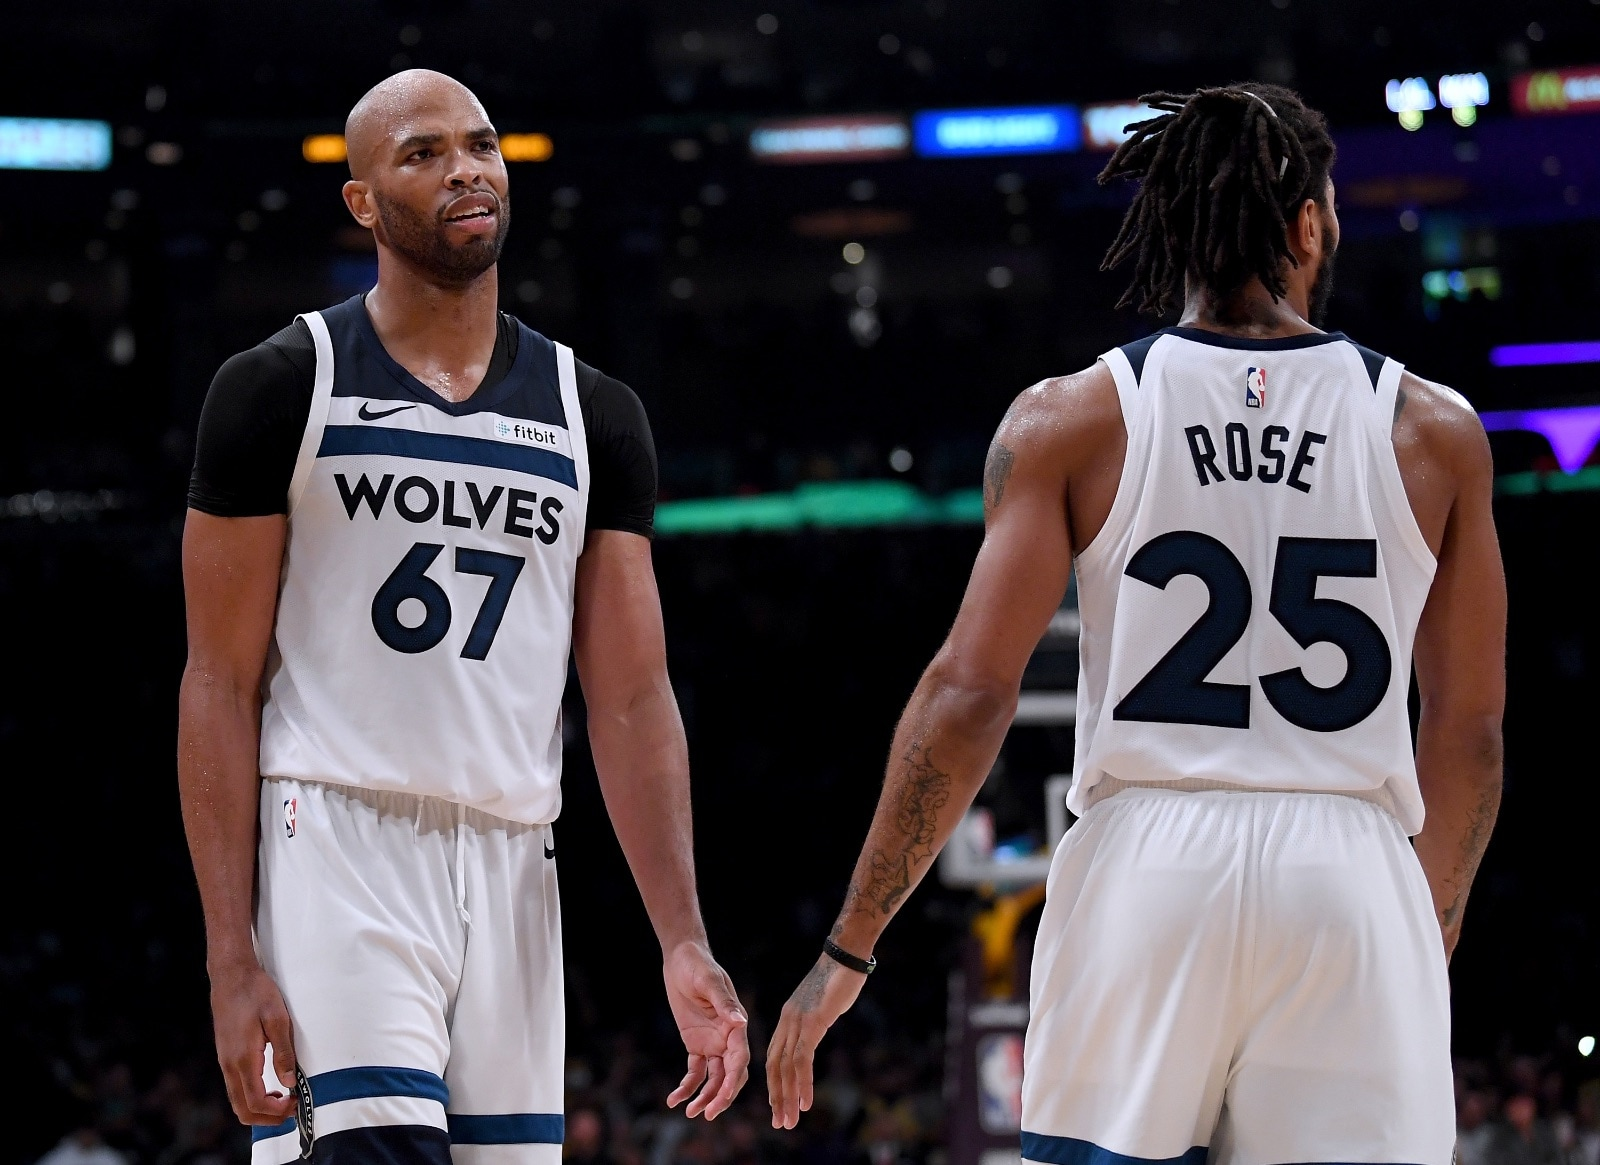 Taj Gibson #67 of the Minnesota Timberwolves reacts to his foul with Derrick Rose #25 during a 114-110 loss to the Los Angeles Lakers at Staples Center on November 7, 2018 in Los Angeles, California.